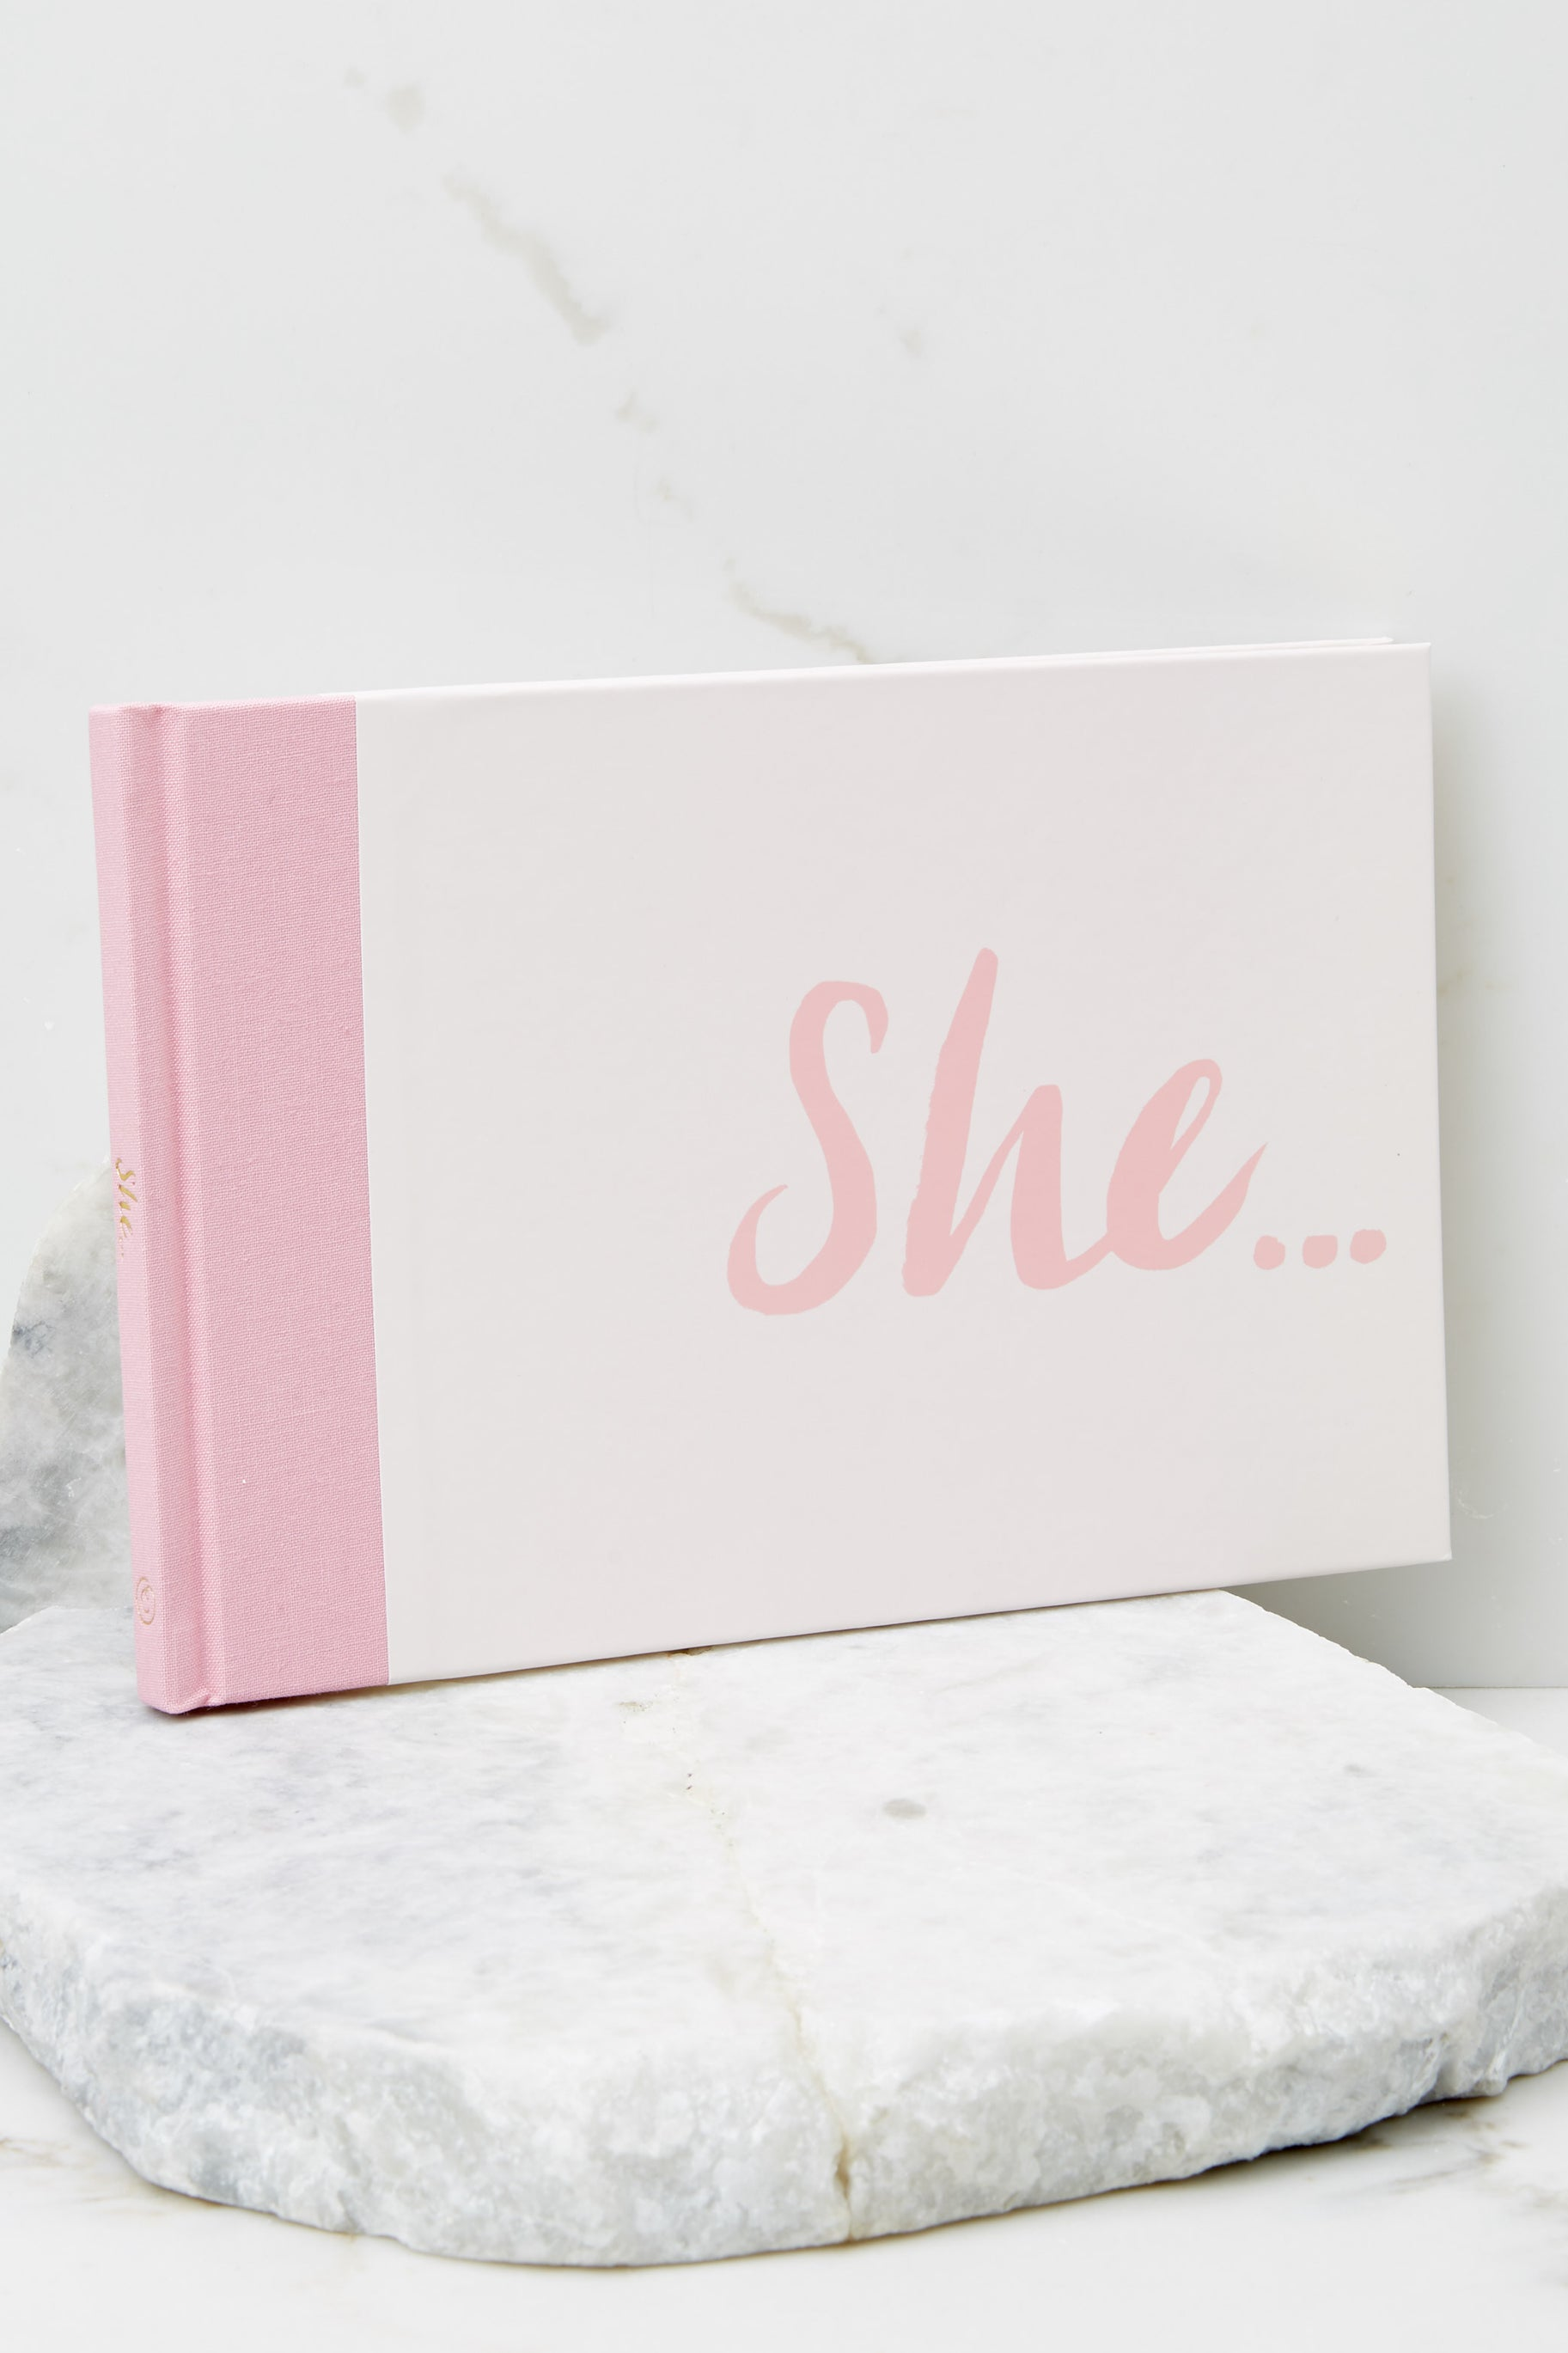 1 She... Inspirational Book at reddress.com